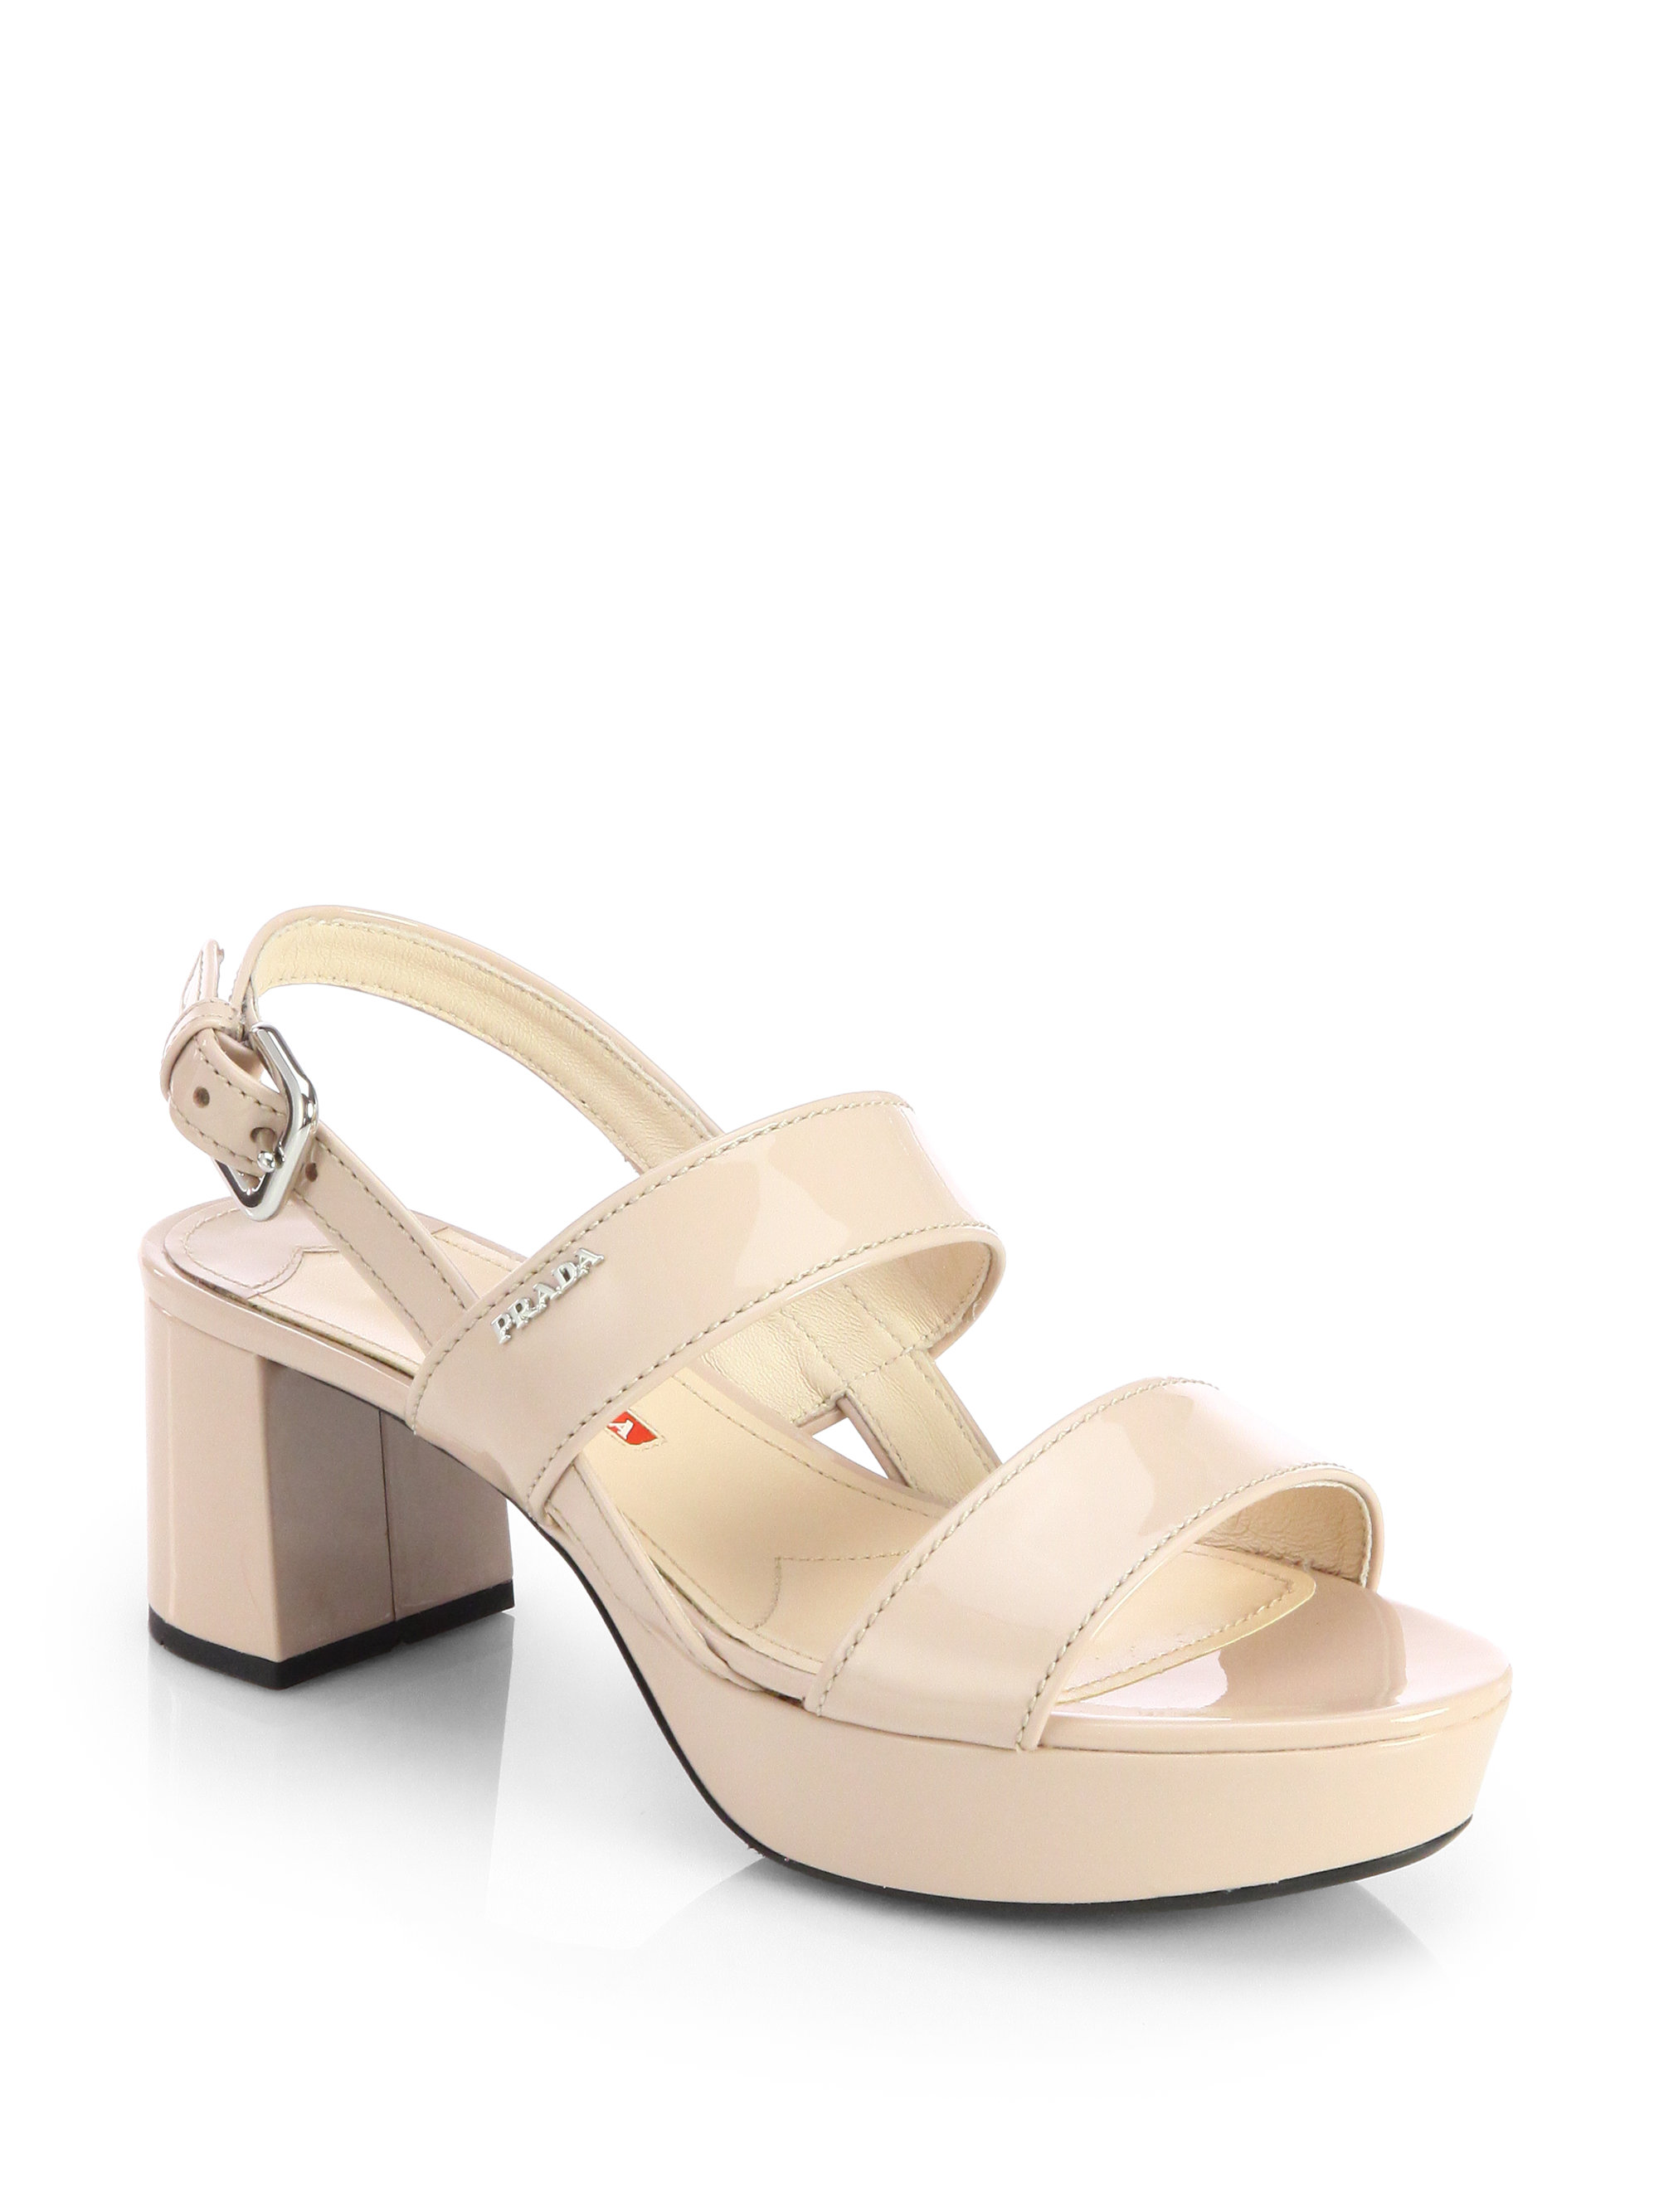 484aa14604603 Prada Patent Leather Block-Heel Sandals in Natural - Lyst